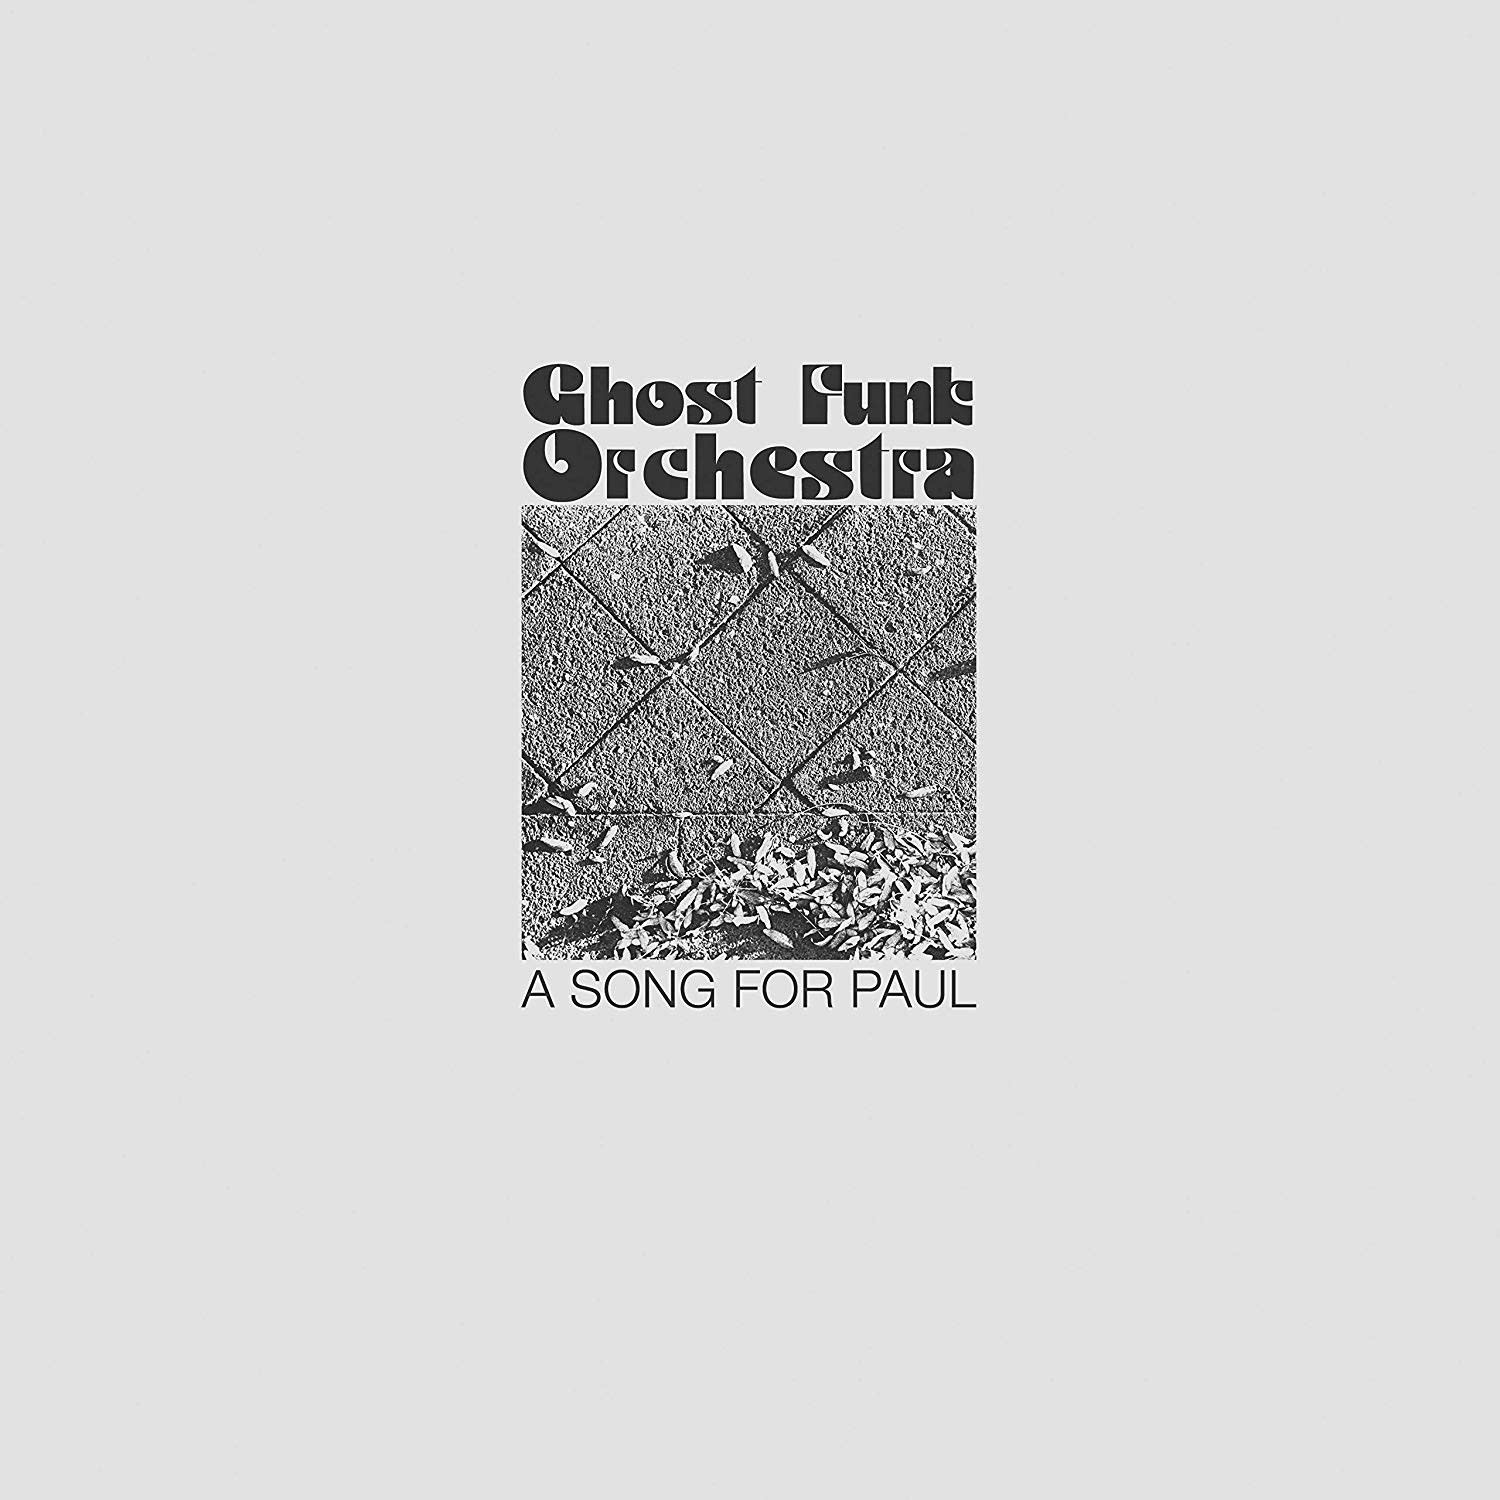 Ghost Funk Orchestra – A Song For Paul